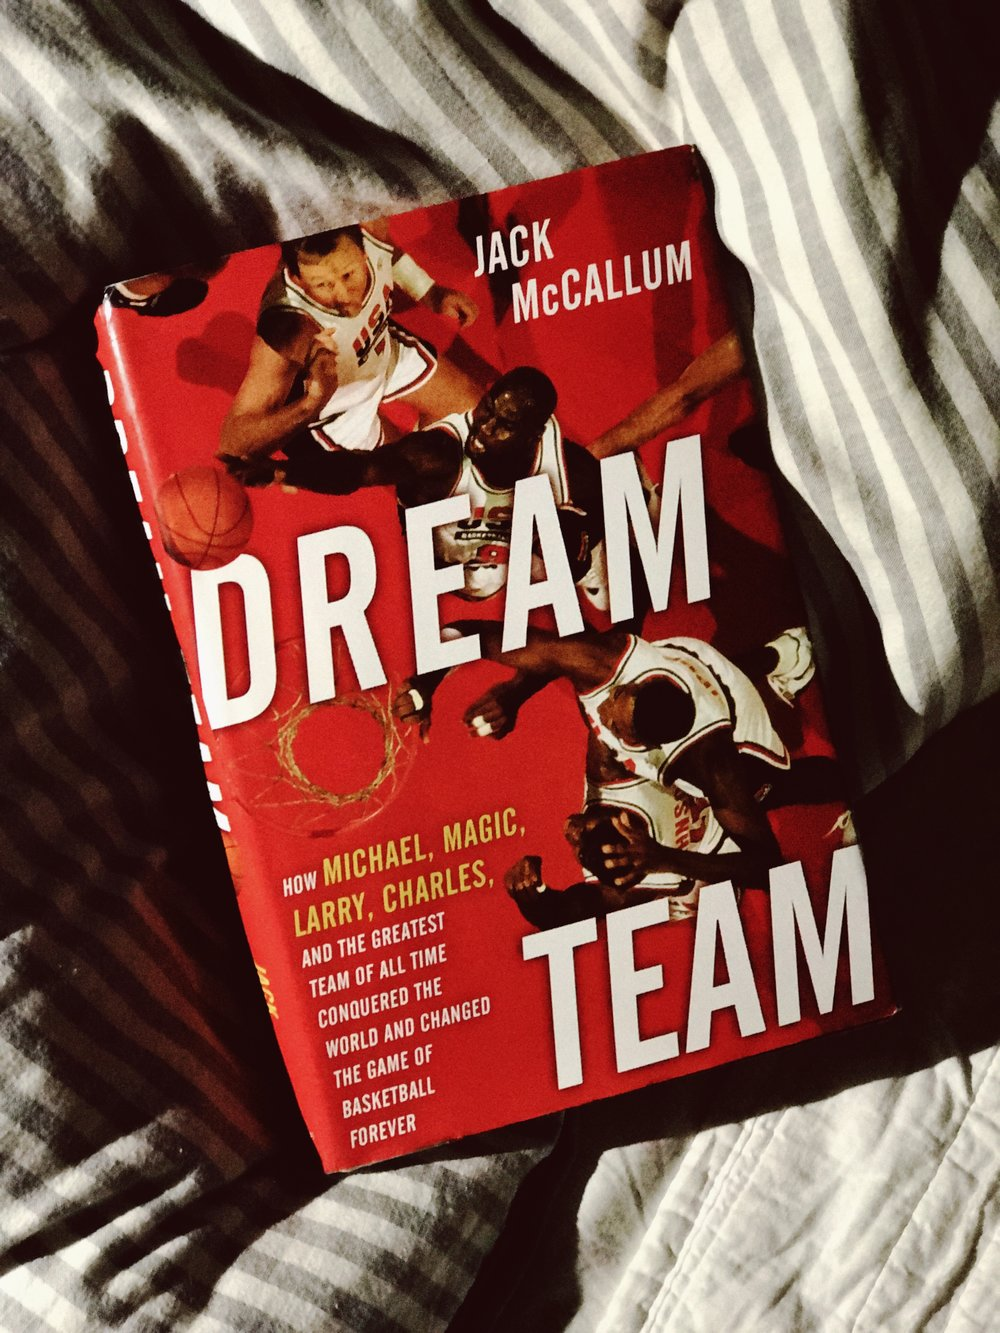 """Dream Team: How Michael, Magic, Larry, Charles, and The Greatest Team Of All Time Conquered The World and Changed the Game of Basketball Forever"" by Jack McCallum"